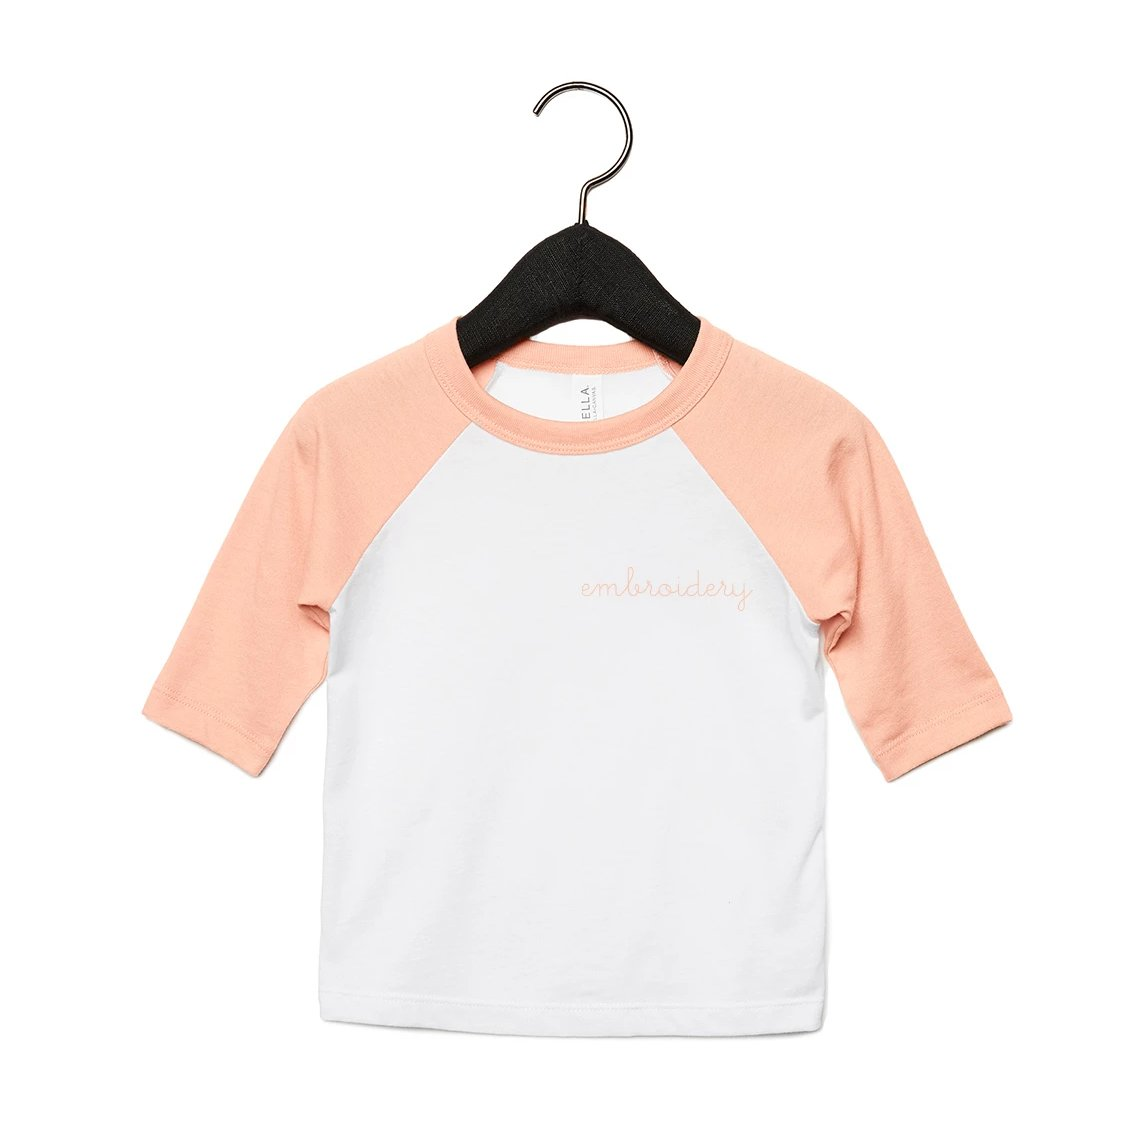 Big Kids Baseball T-shirt juju + stitch Youth S / Heather Peach/White custom personalized script embroidered kids baseball t-shirt